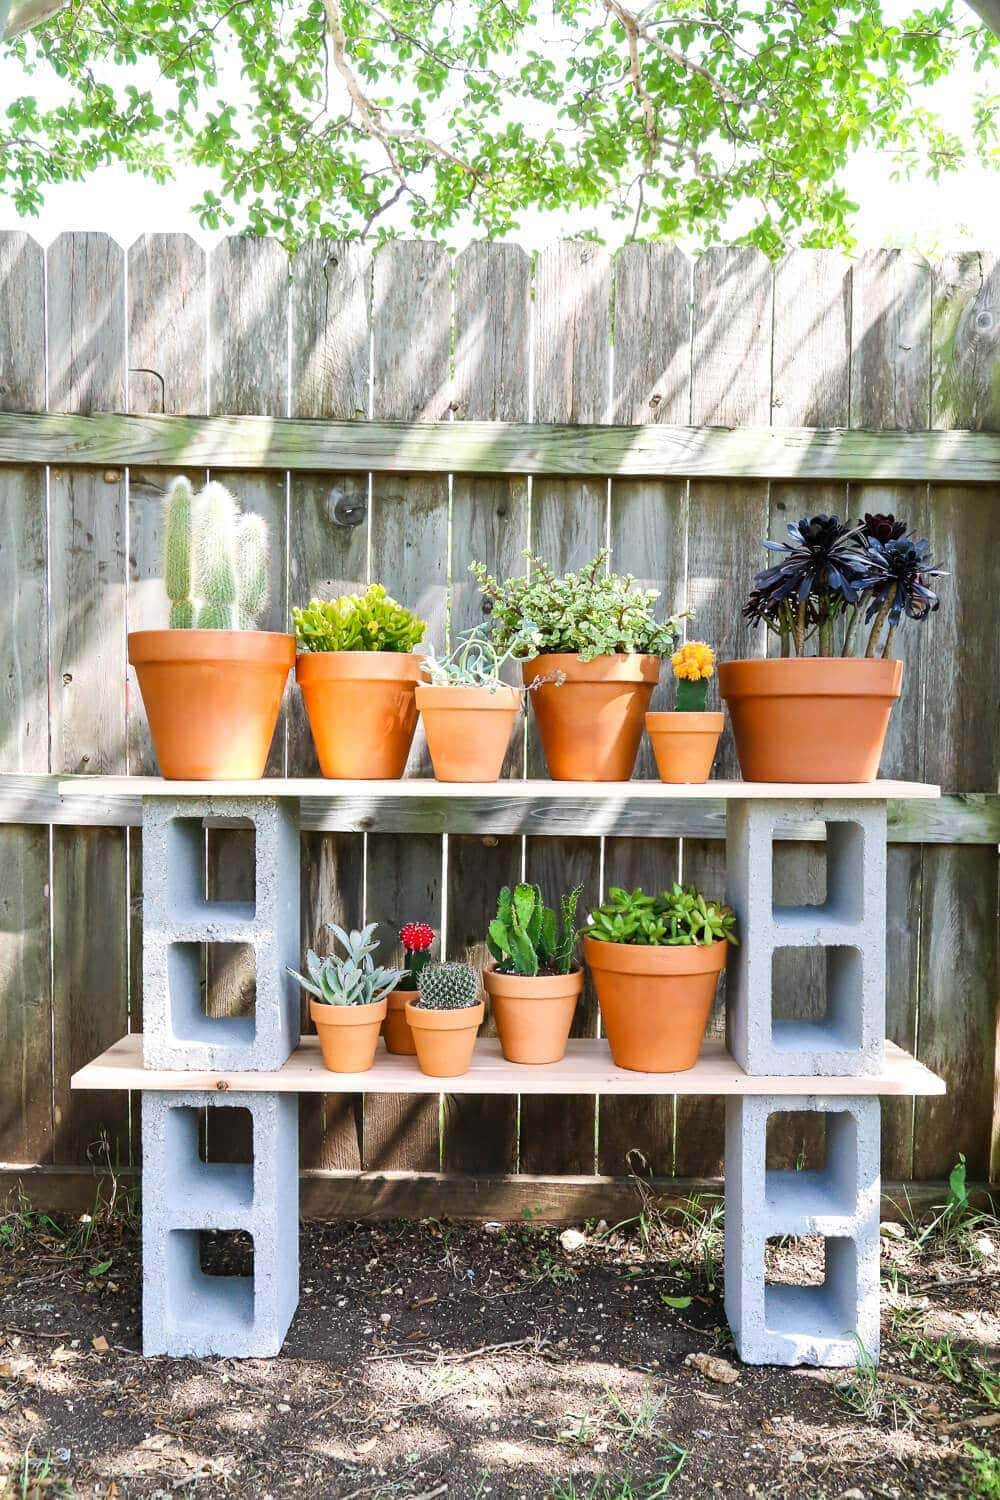 DIY cinder block shelves